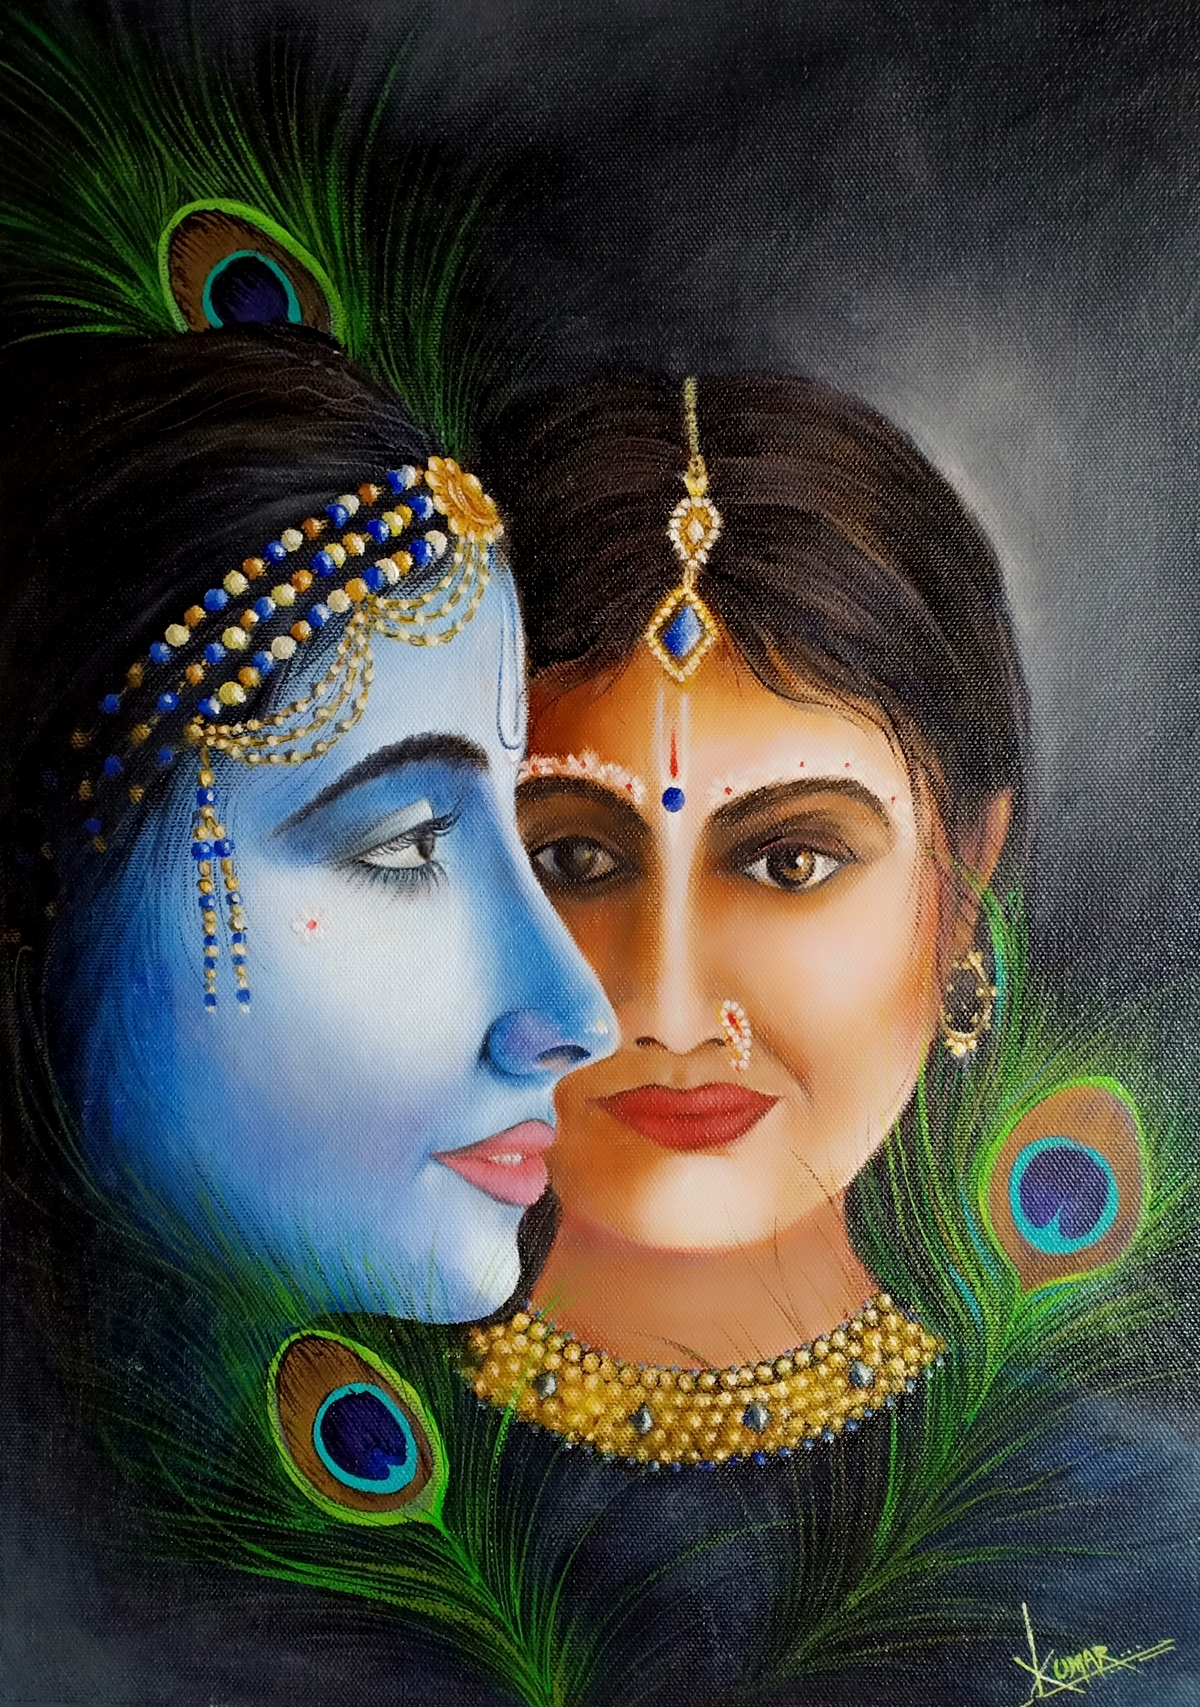 Radha Krishna by Kumar Ranadive, Photorealism Painting, Oil & Acrylic on Canvas, Indian Khaki color